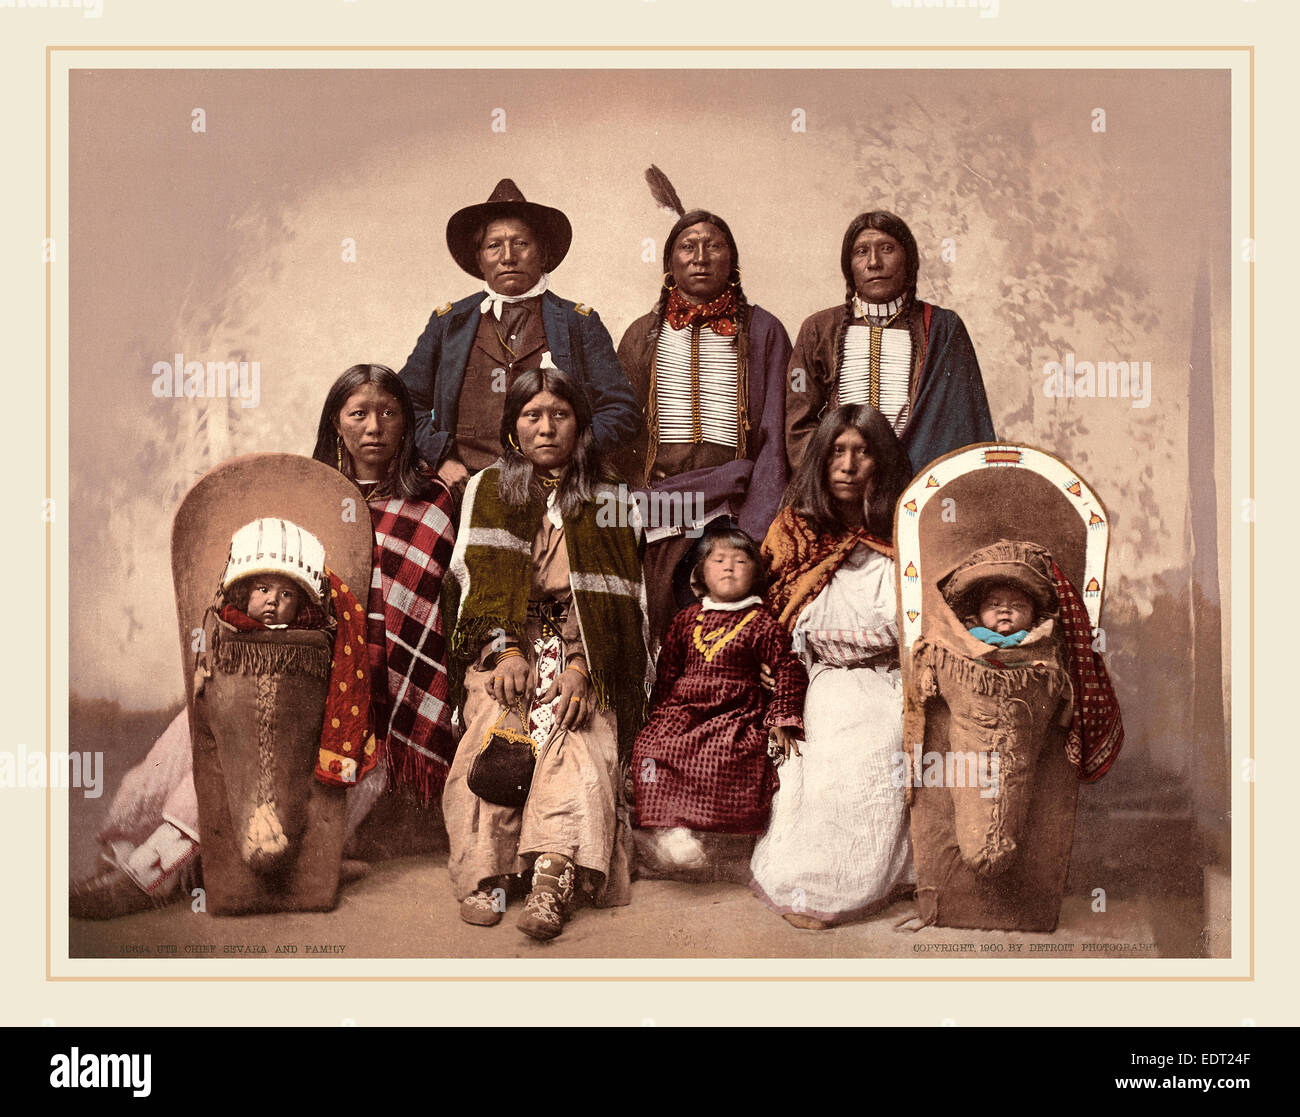 American 19th Century (Detroit Photographic Co.), Ute Chief Sevara and Family, 1900, photochrom - Stock Image